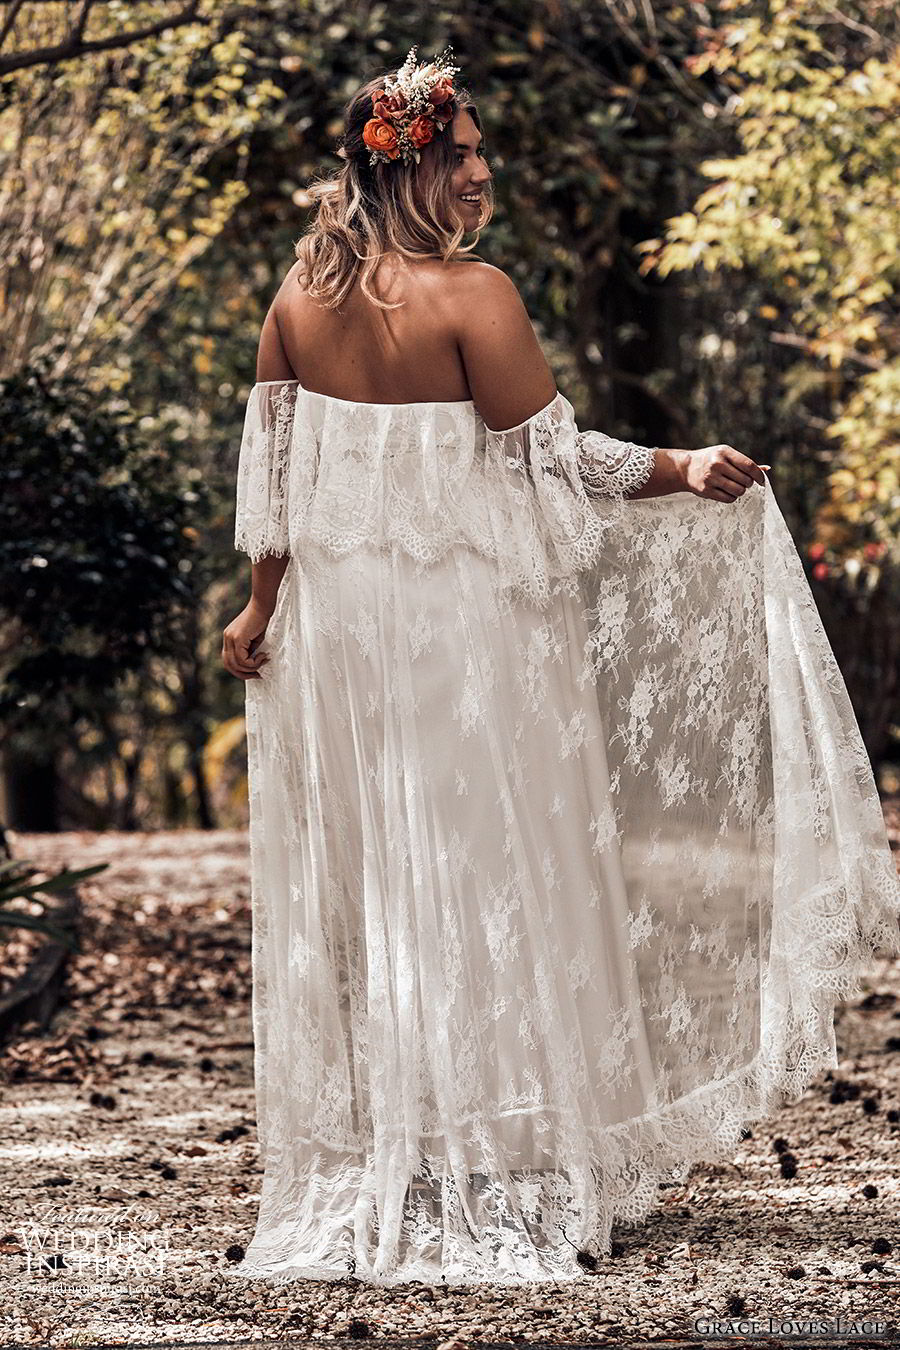 grace loves lace 2019 bridal strapless detached flutter sleeves semi sweetheart soft a line embellished lace wedding dress sweep train plus size boho romantic (4) bv